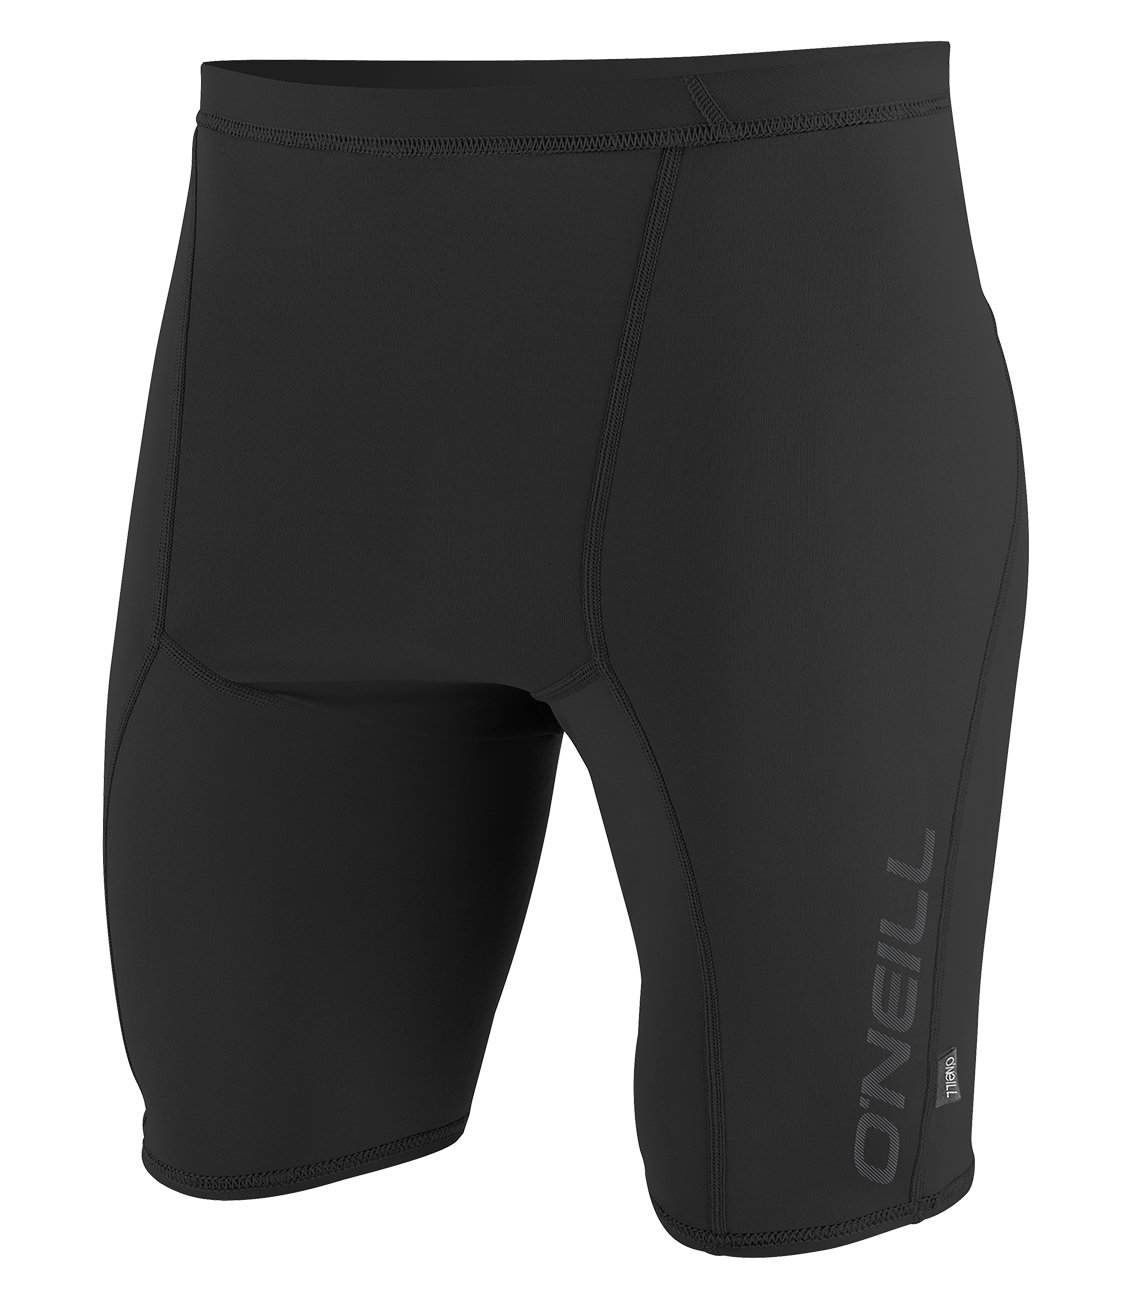 O'Neill Men's Thermo X Shorts, Black, XX-Large by O'Neill Wetsuits